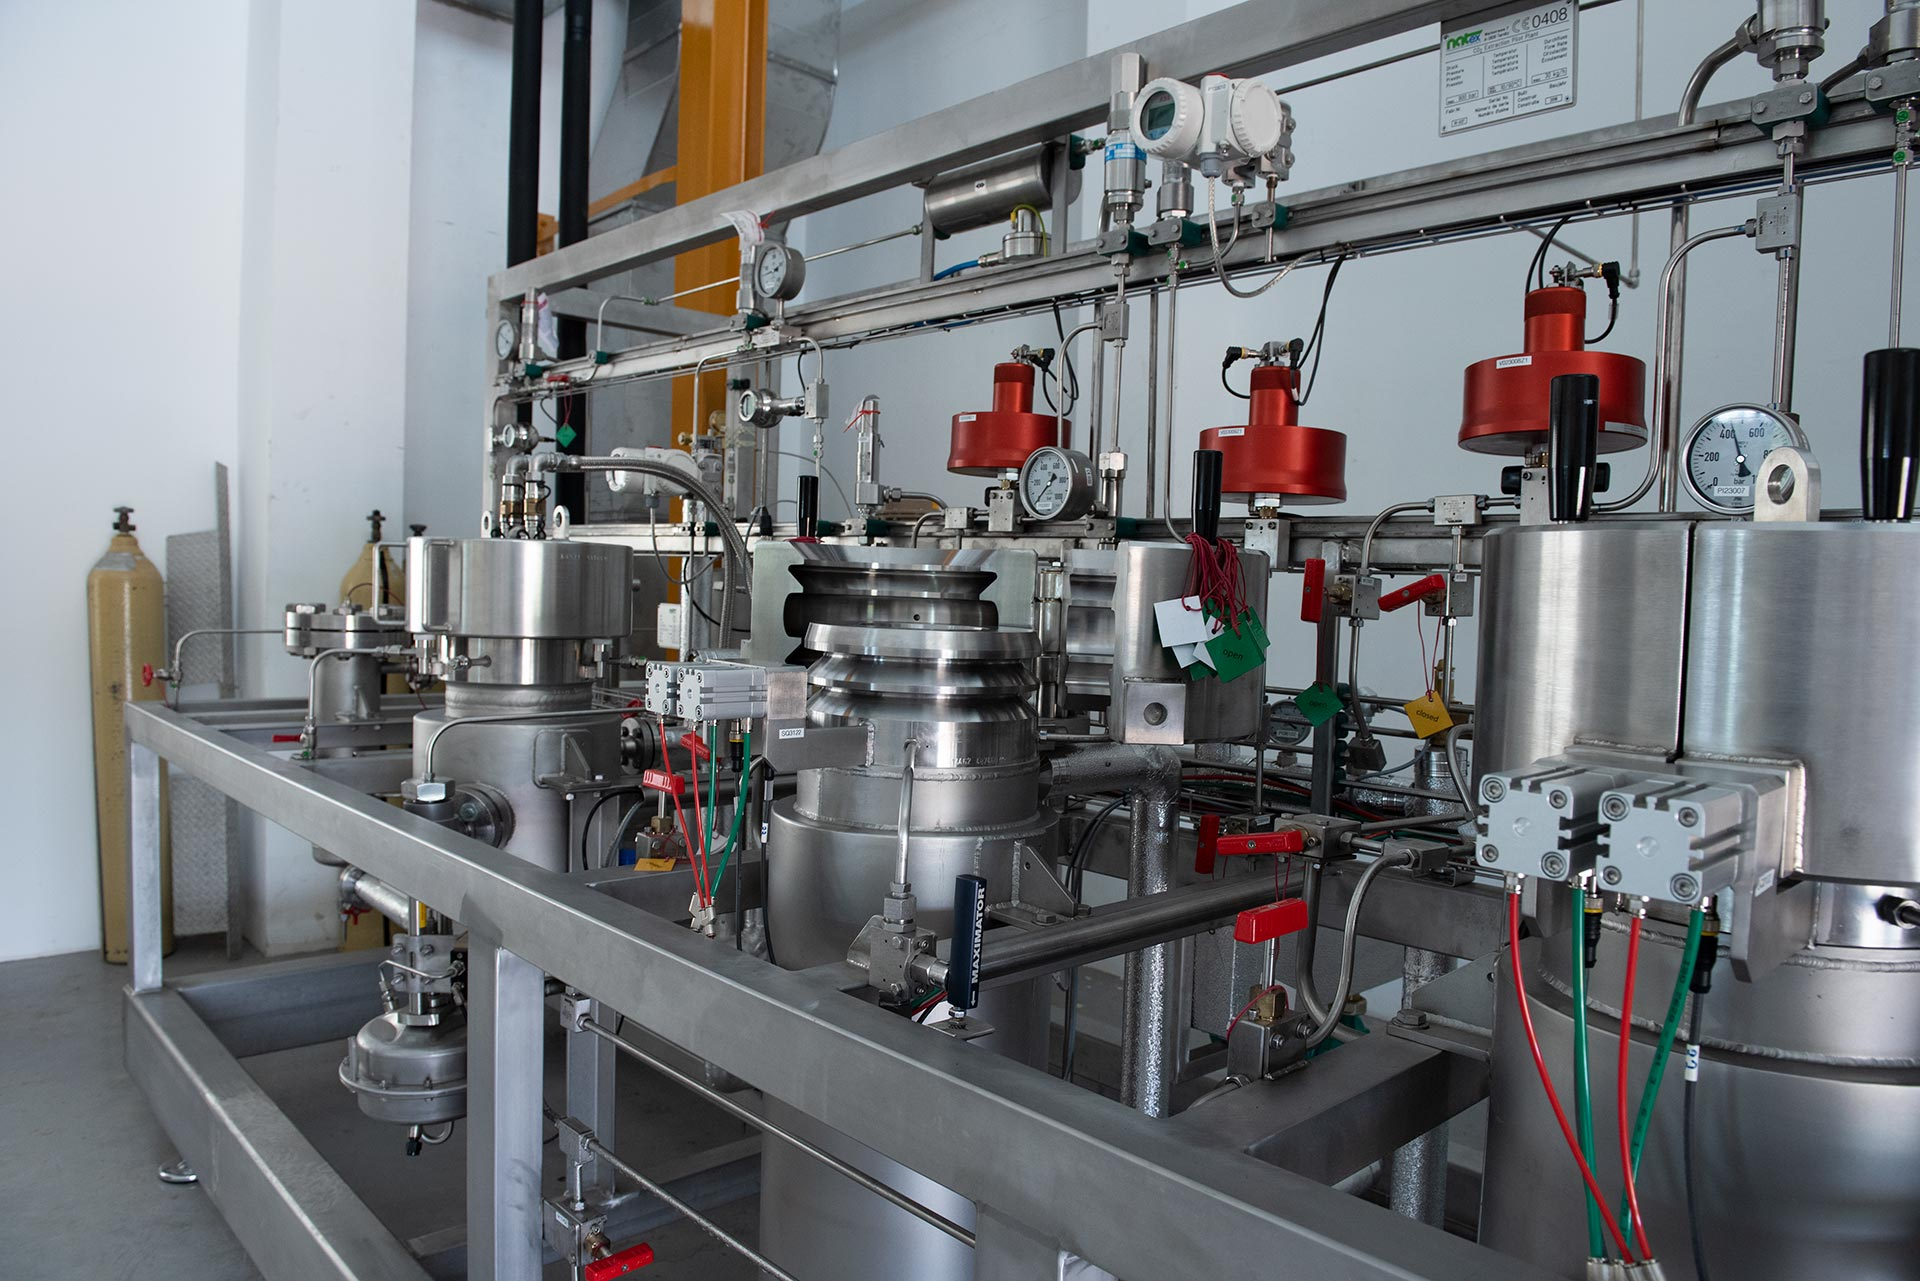 Extraction plant for natural substances